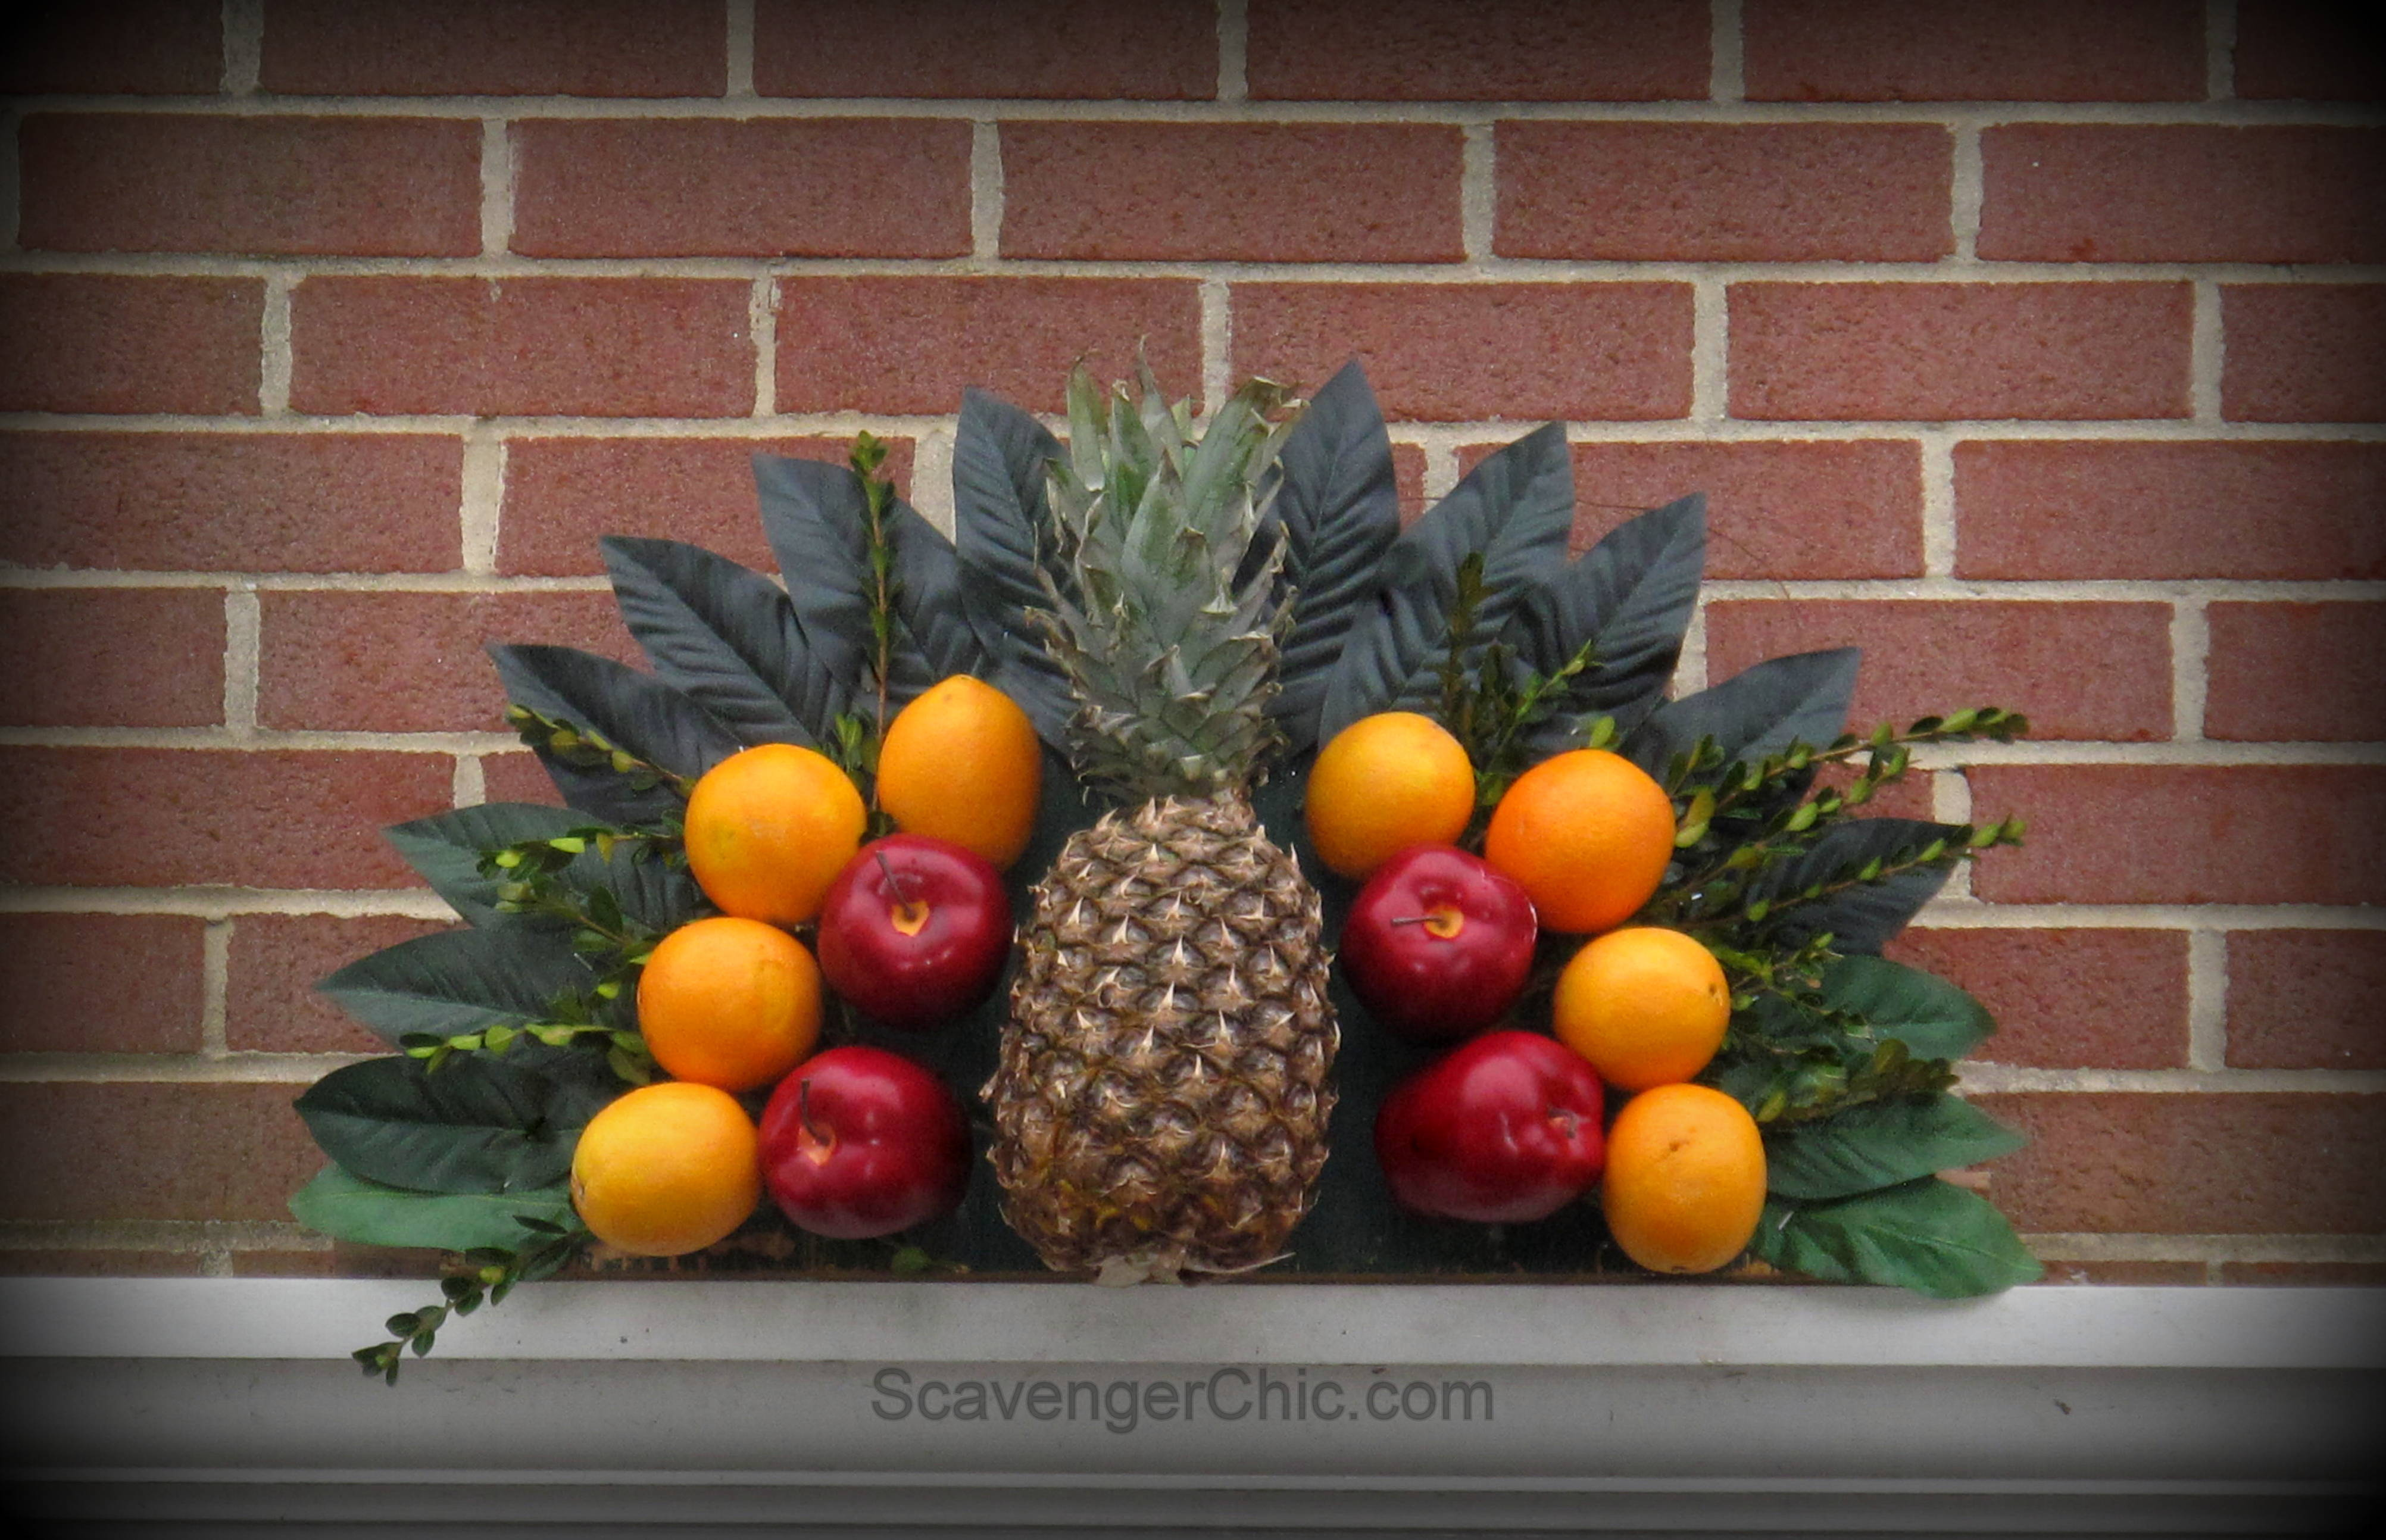 Fruit over the door christmas decoration - Fruit Over The Door Christmas Decoration 2